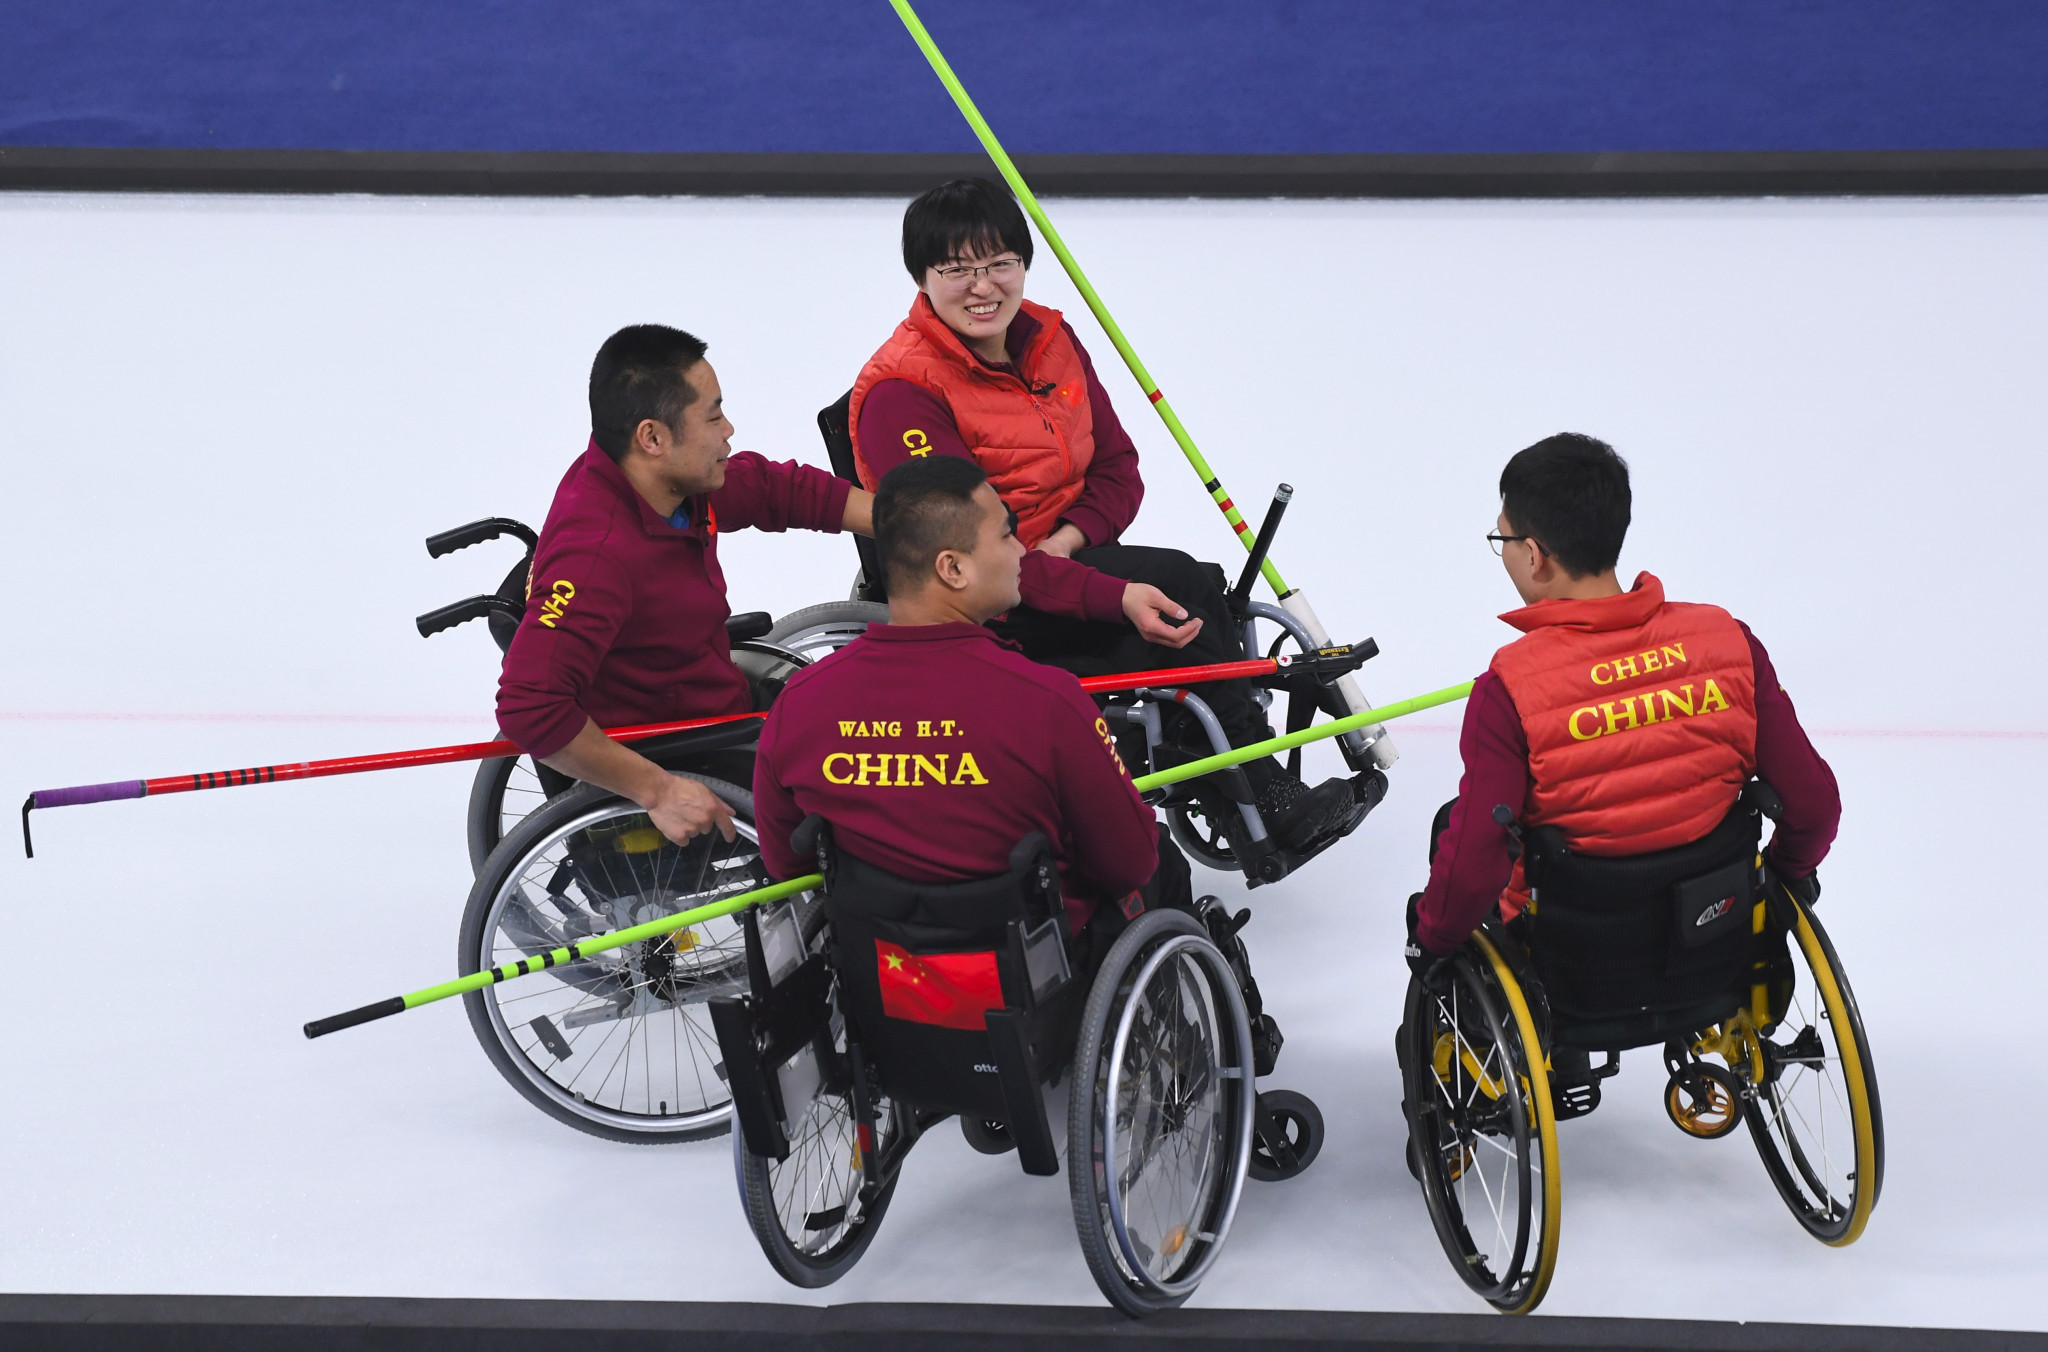 Chinese wheelchair curling team claim IPC Allianz Best Team of the Month award after Pyeongchang 2018 triumph